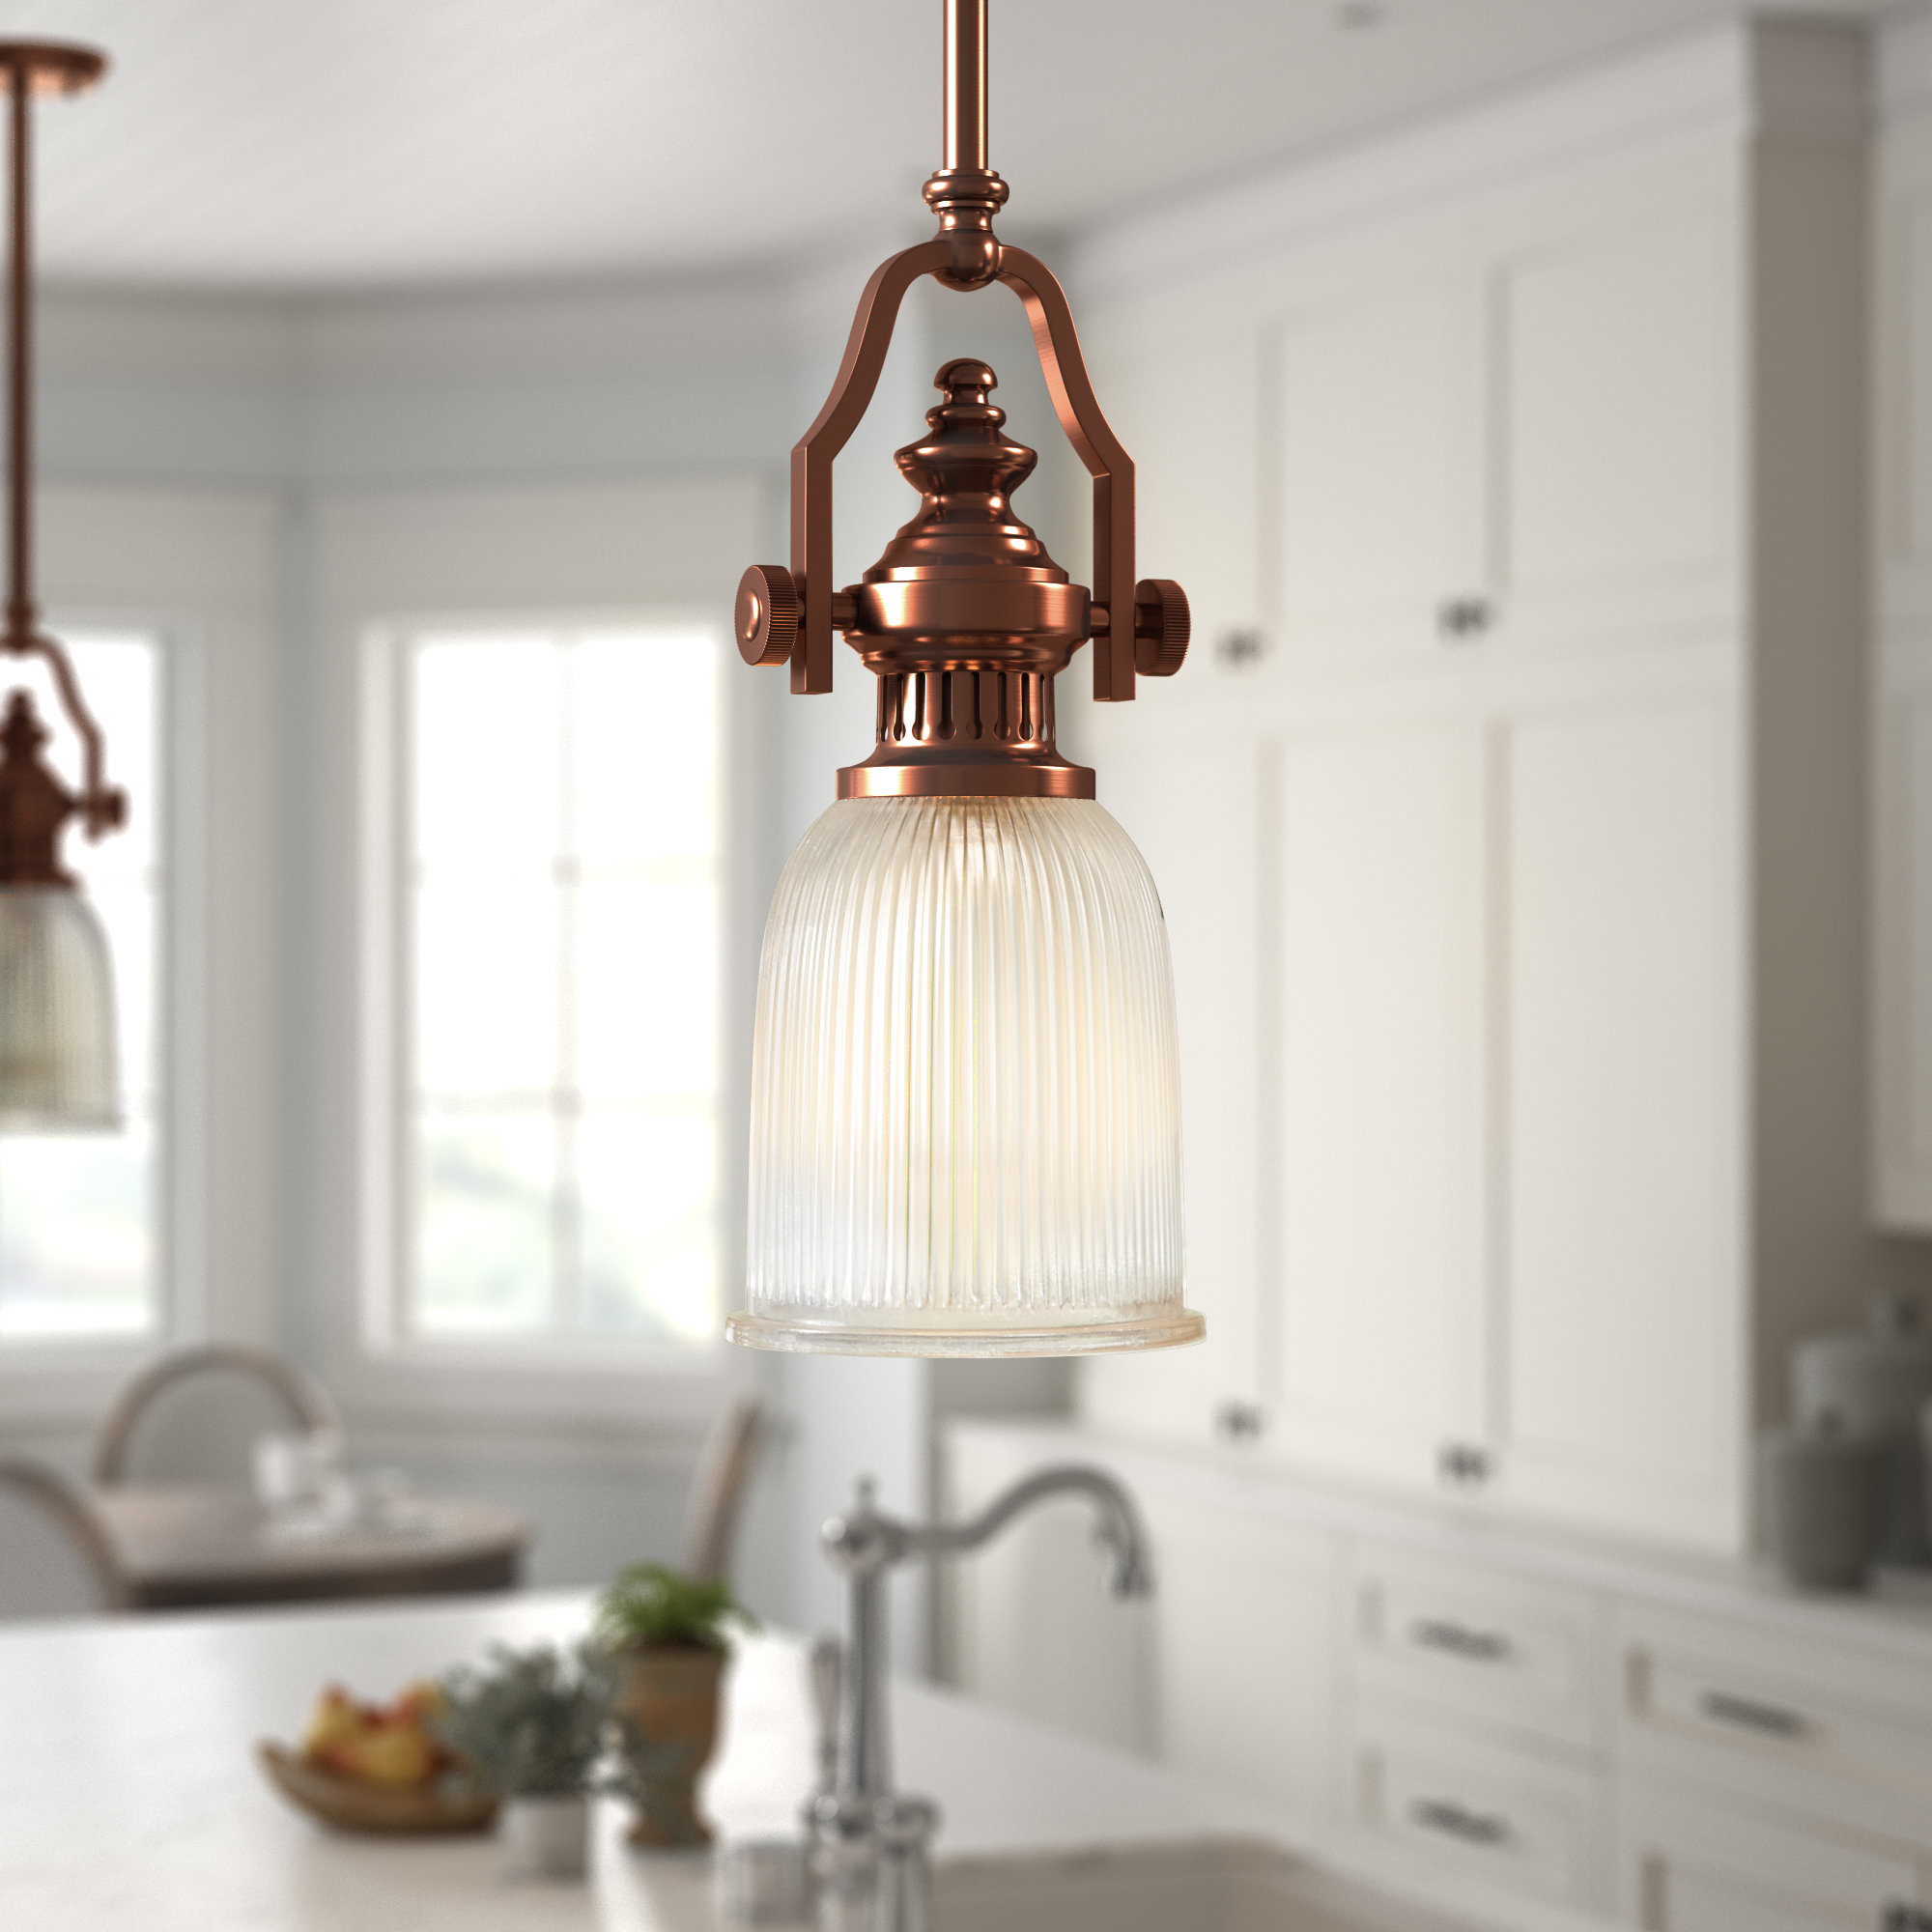 Erico 1 Light Single Bell Pendant Intended For Bodalla 1 Light Single Bell Pendants (Gallery 24 of 30)